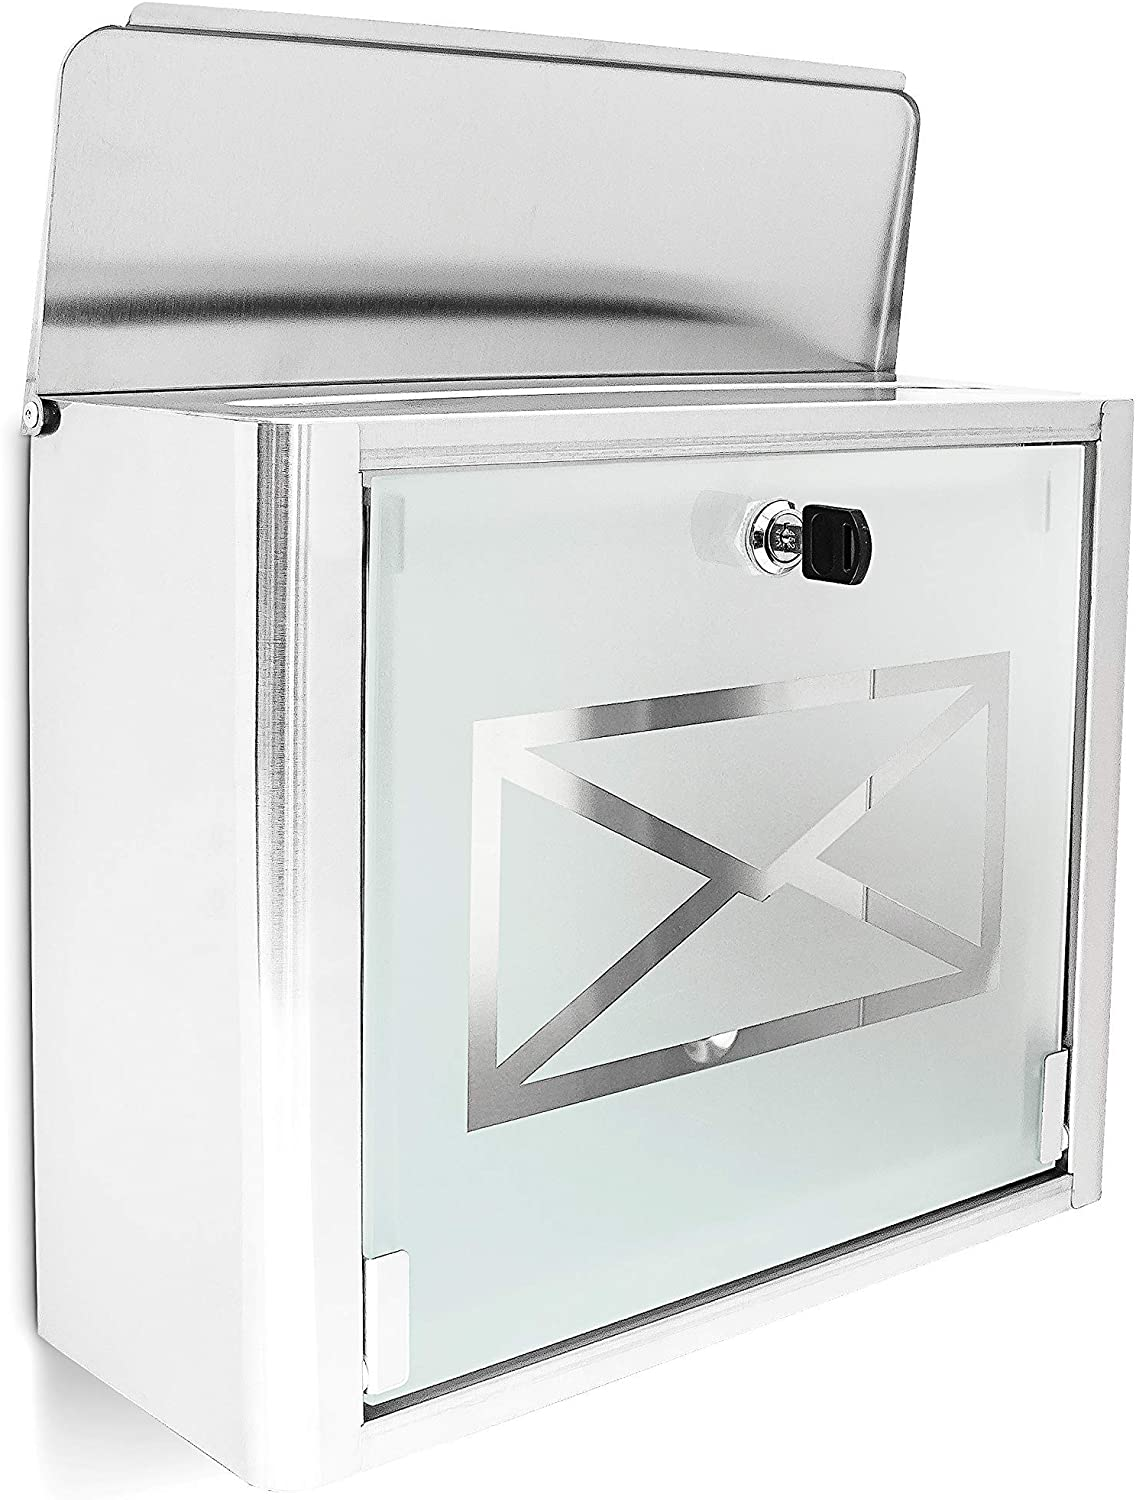 Locking Relaxdays Mailbox with Frosted Glass Door Silver//Gray HxWxD: 30.5 x 35.5 x 14 cm Stainless Steel Letterbox